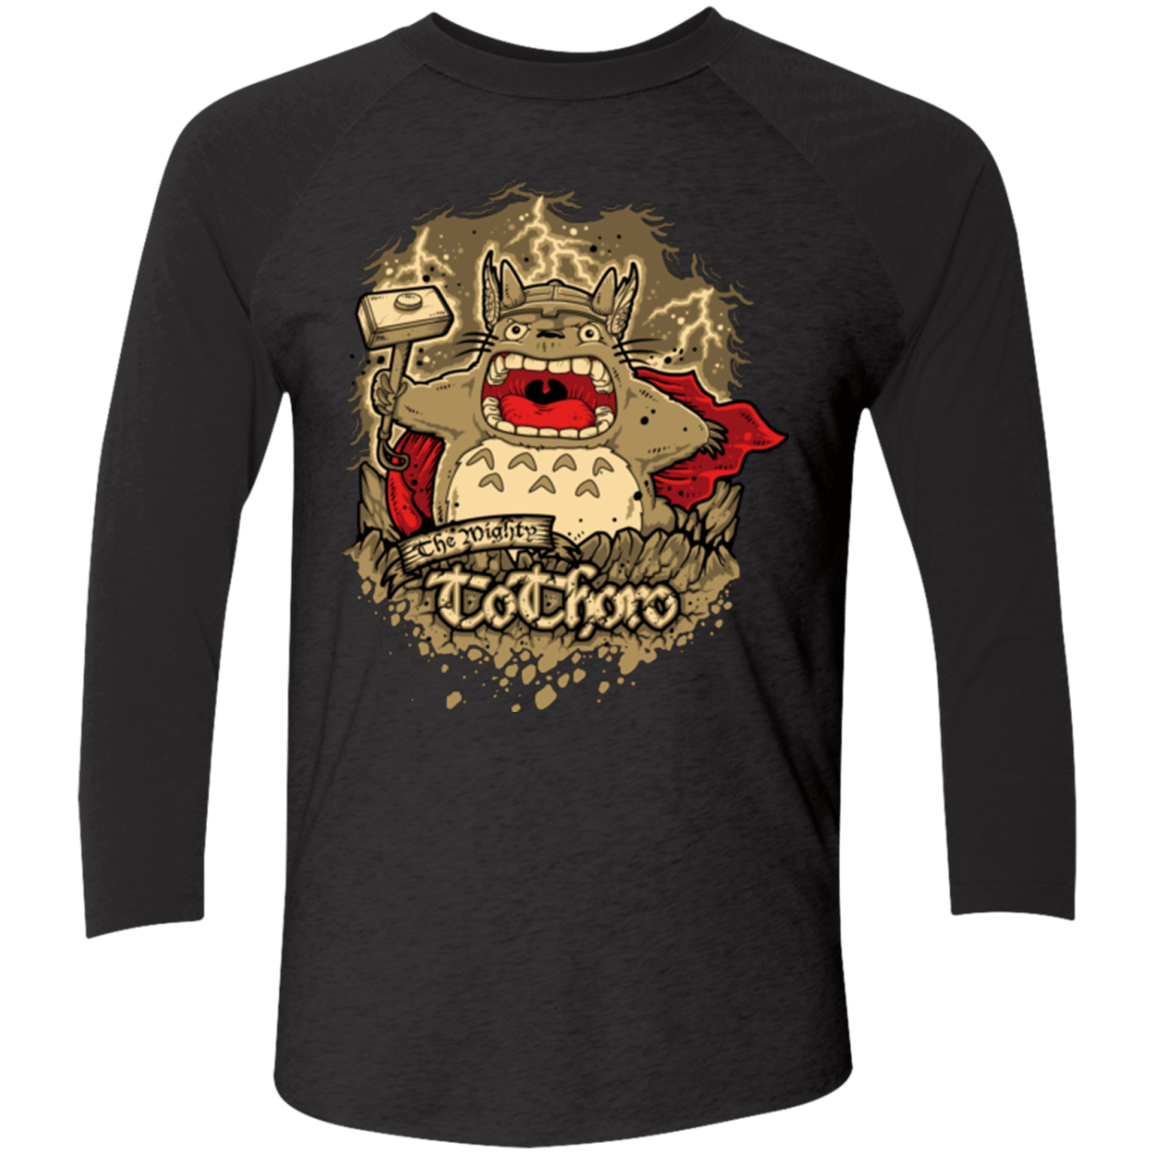 T-Shirts Vintage Black/Vintage Black / X-Small The Mighty Tothoro Men's Triblend 3/4 Sleeve